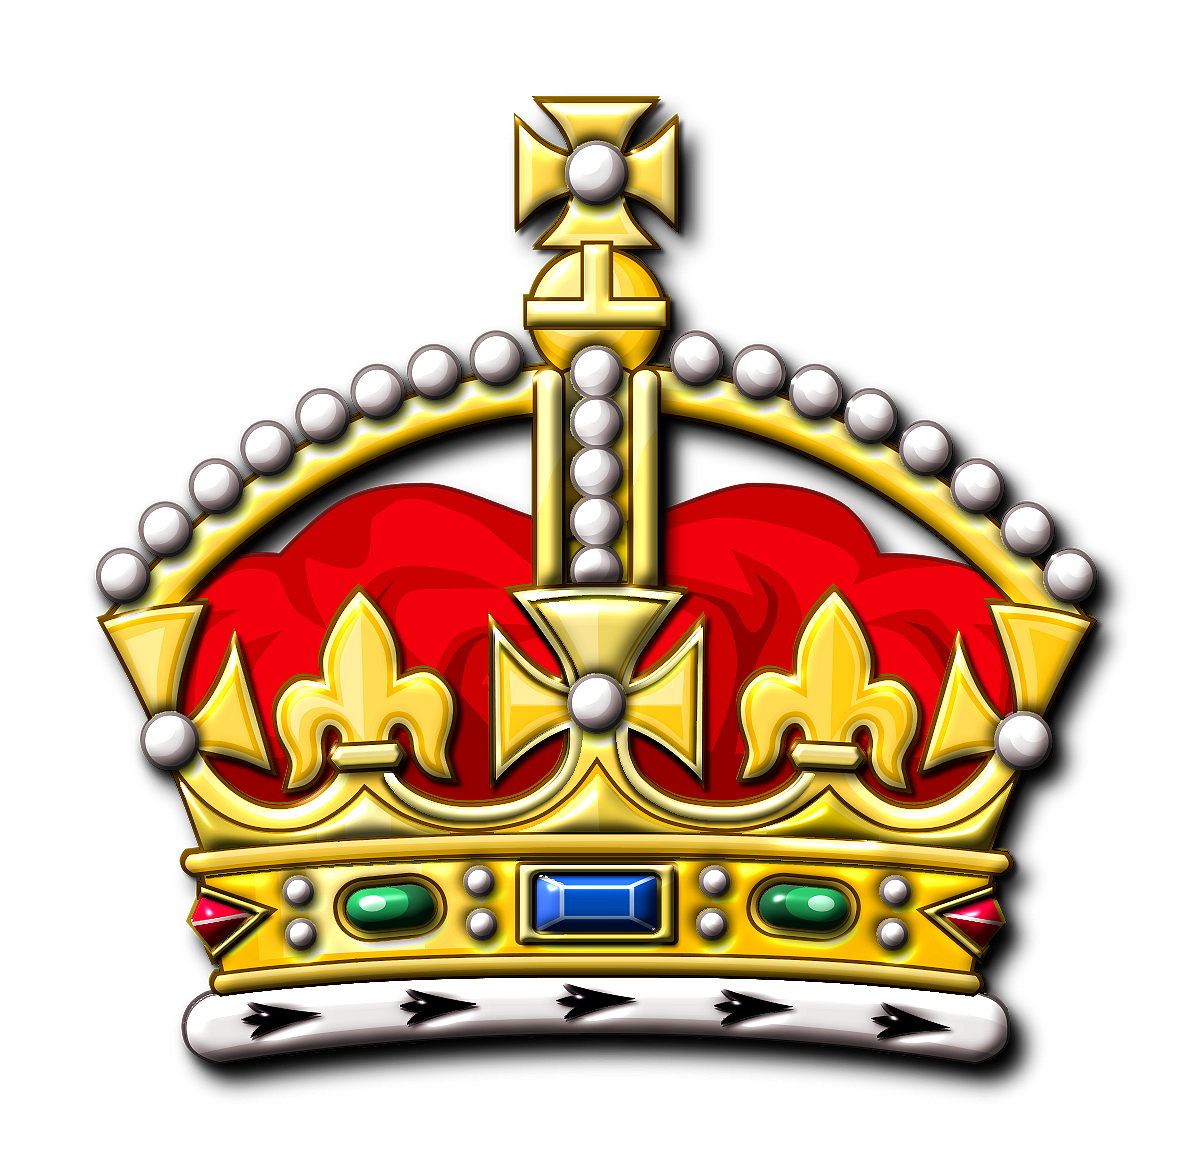 Queen clipart logo. Kings crown drawing at